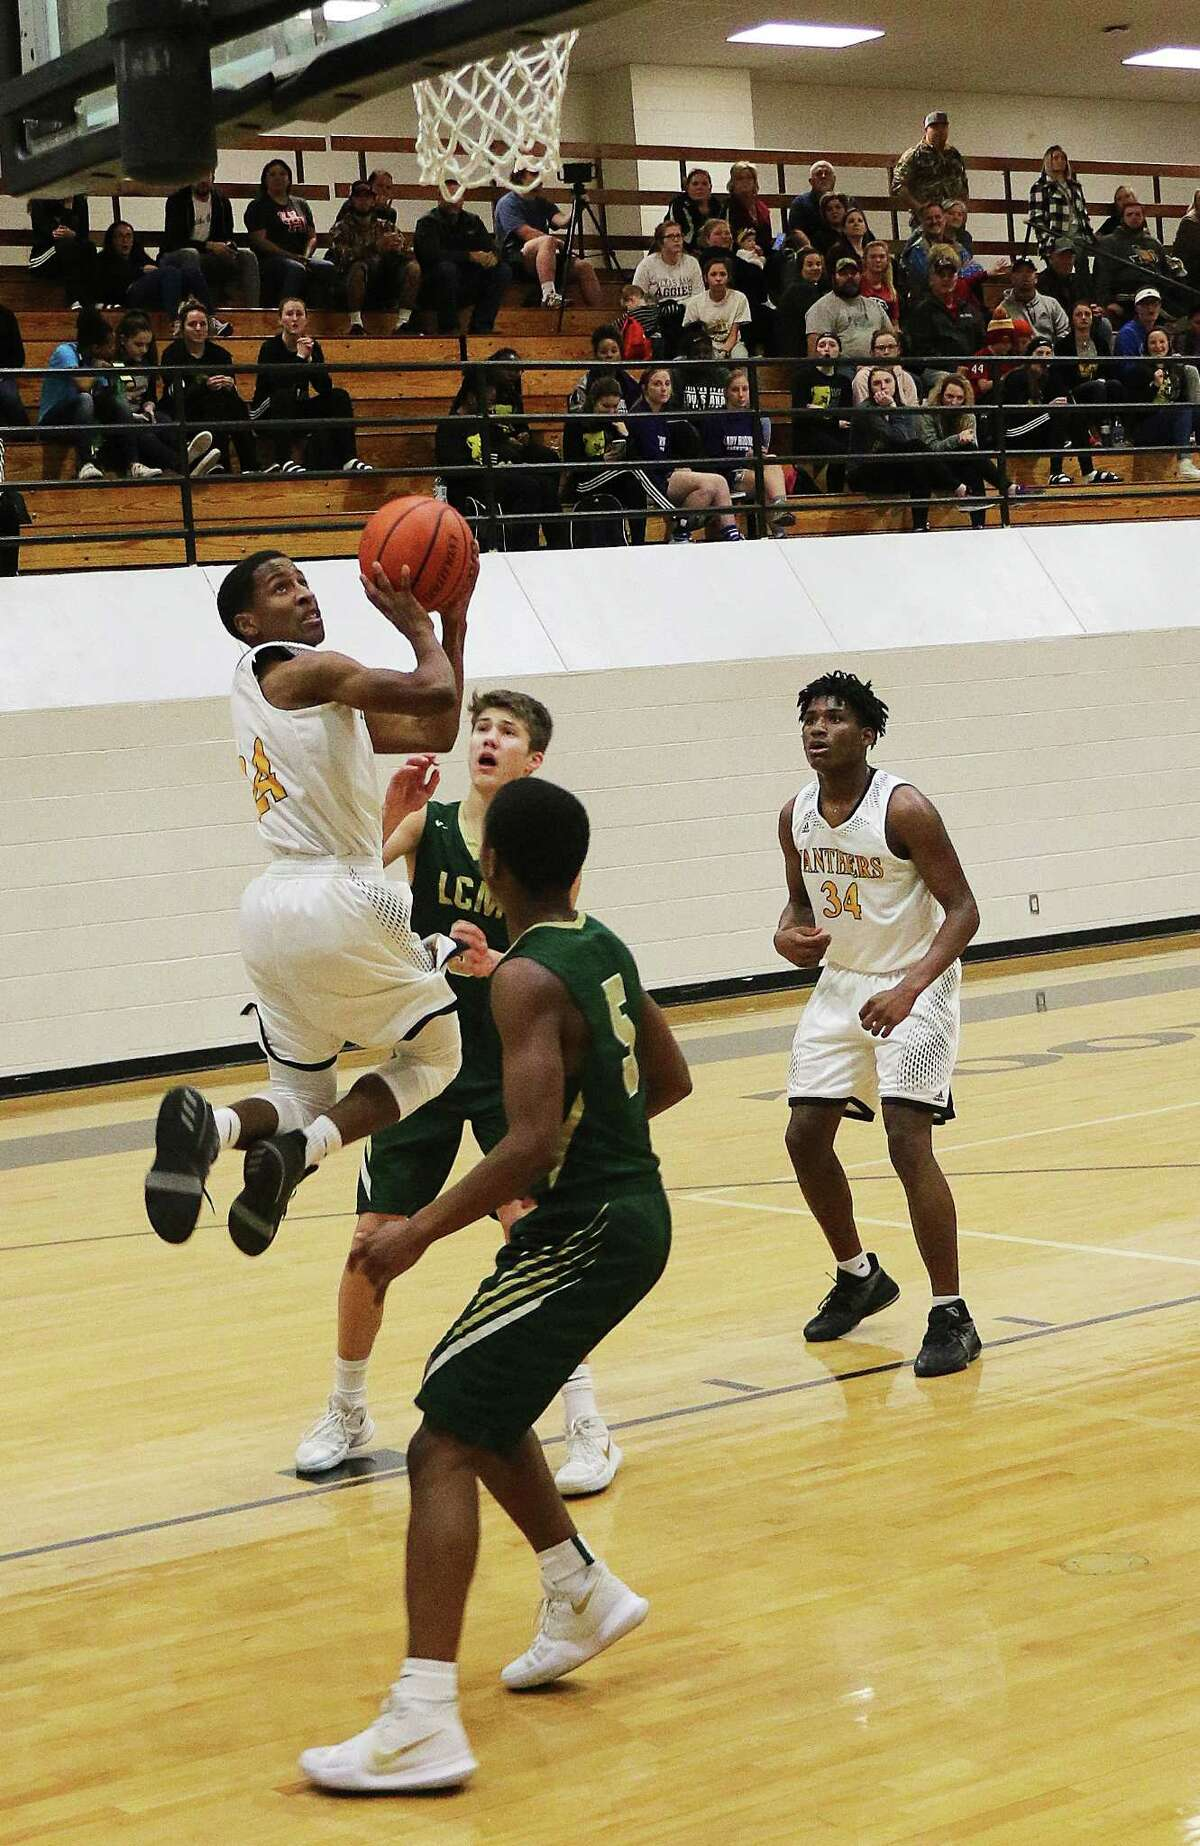 Feet off the floor and in mid-air, Heath Brown turns toward the basket for a shot in TuesdayÂ?'s game against Little Cypress-Mauriceville.